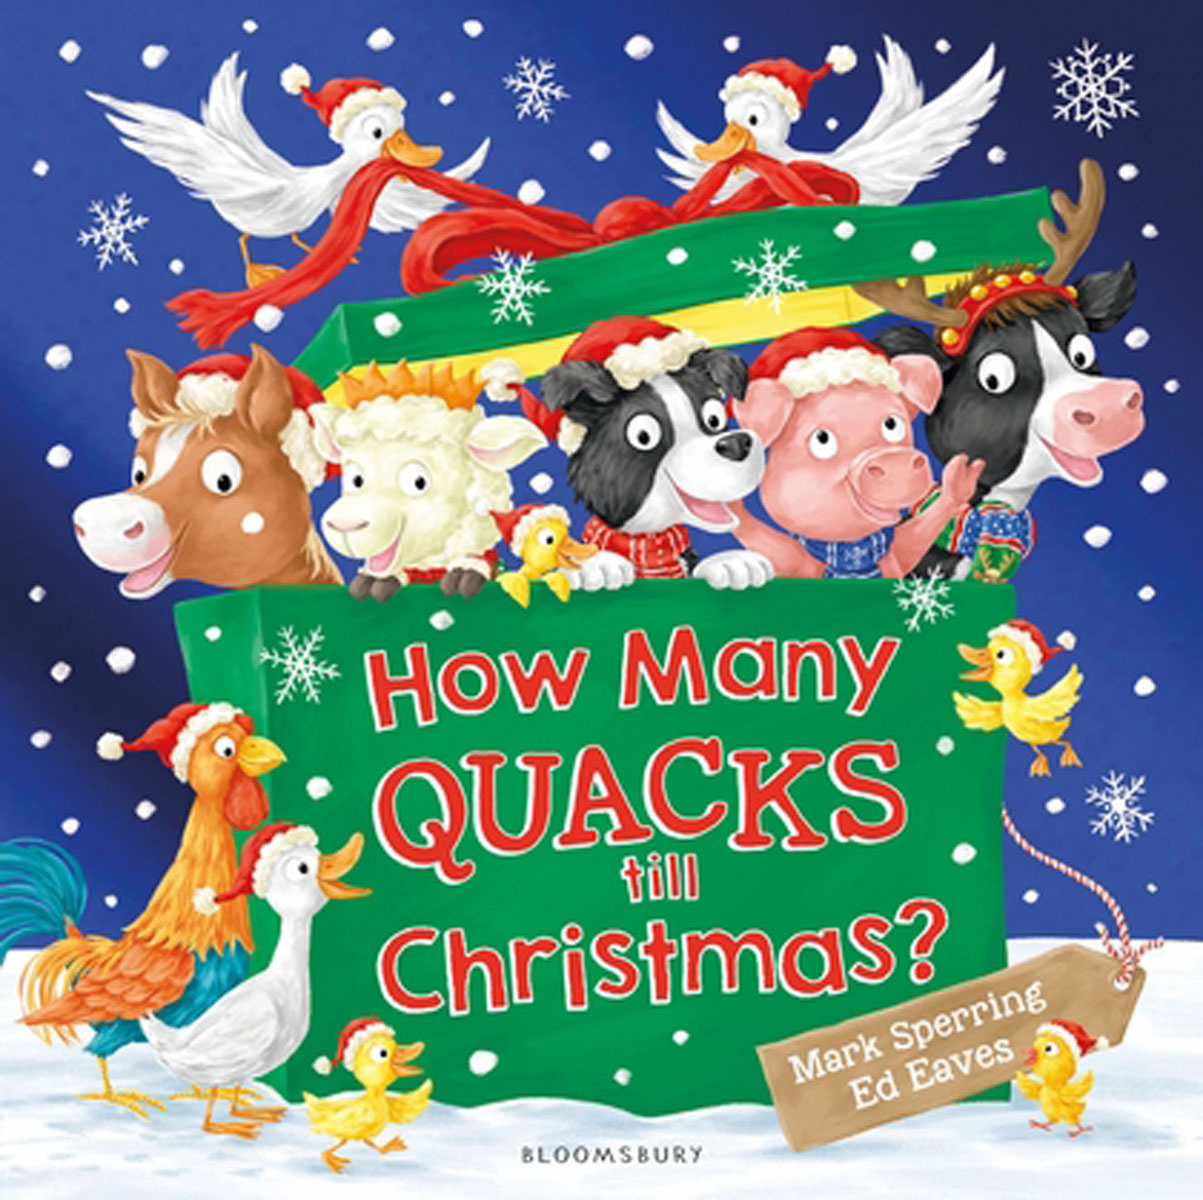 How Many Quacks Till Christmas?